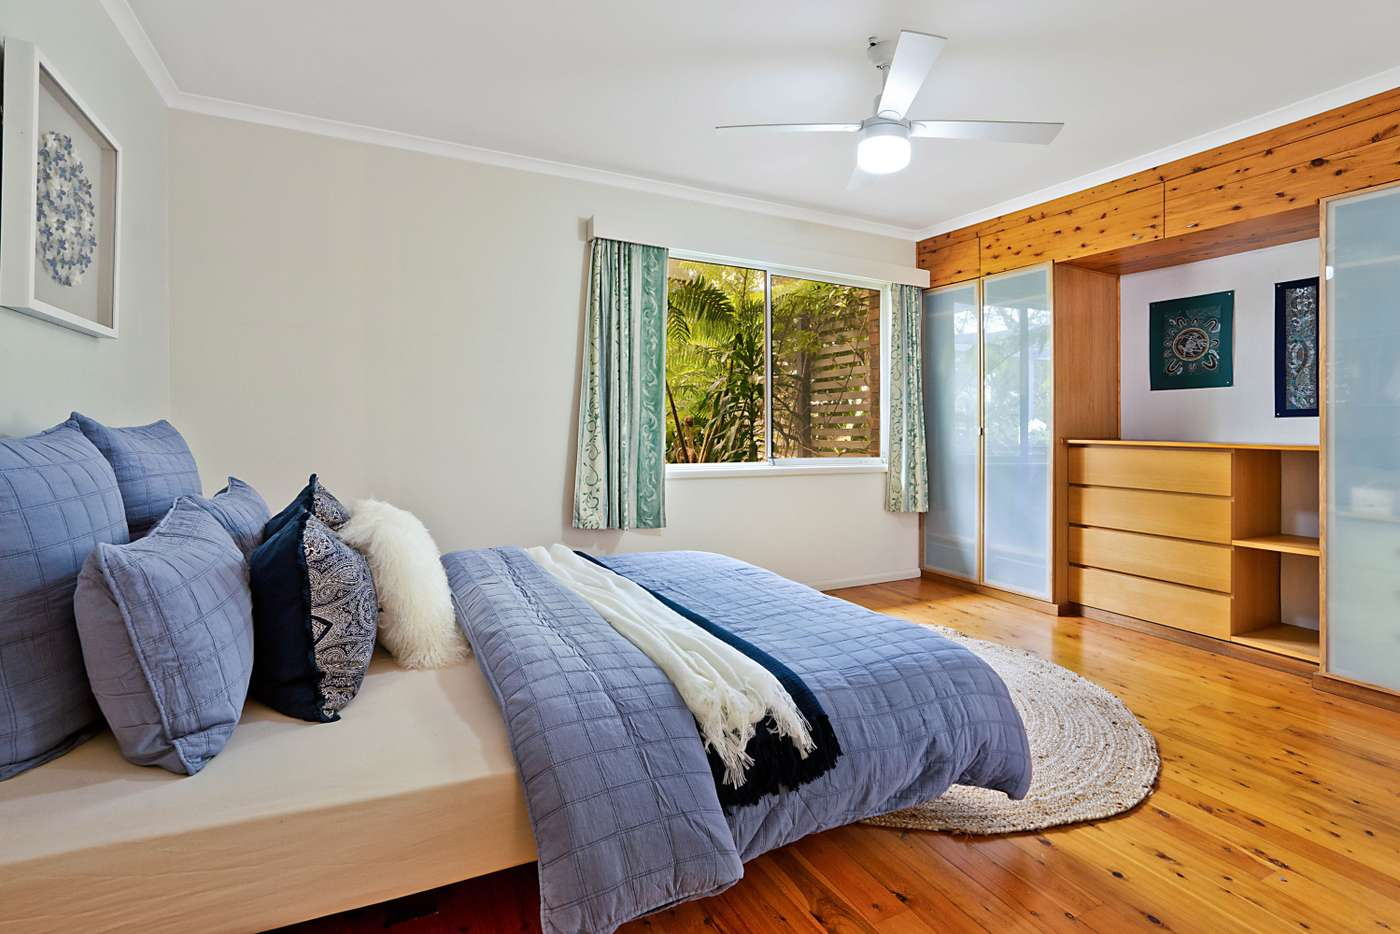 Sixth view of Homely house listing, 14 Hillcrest Road, Empire Bay NSW 2257